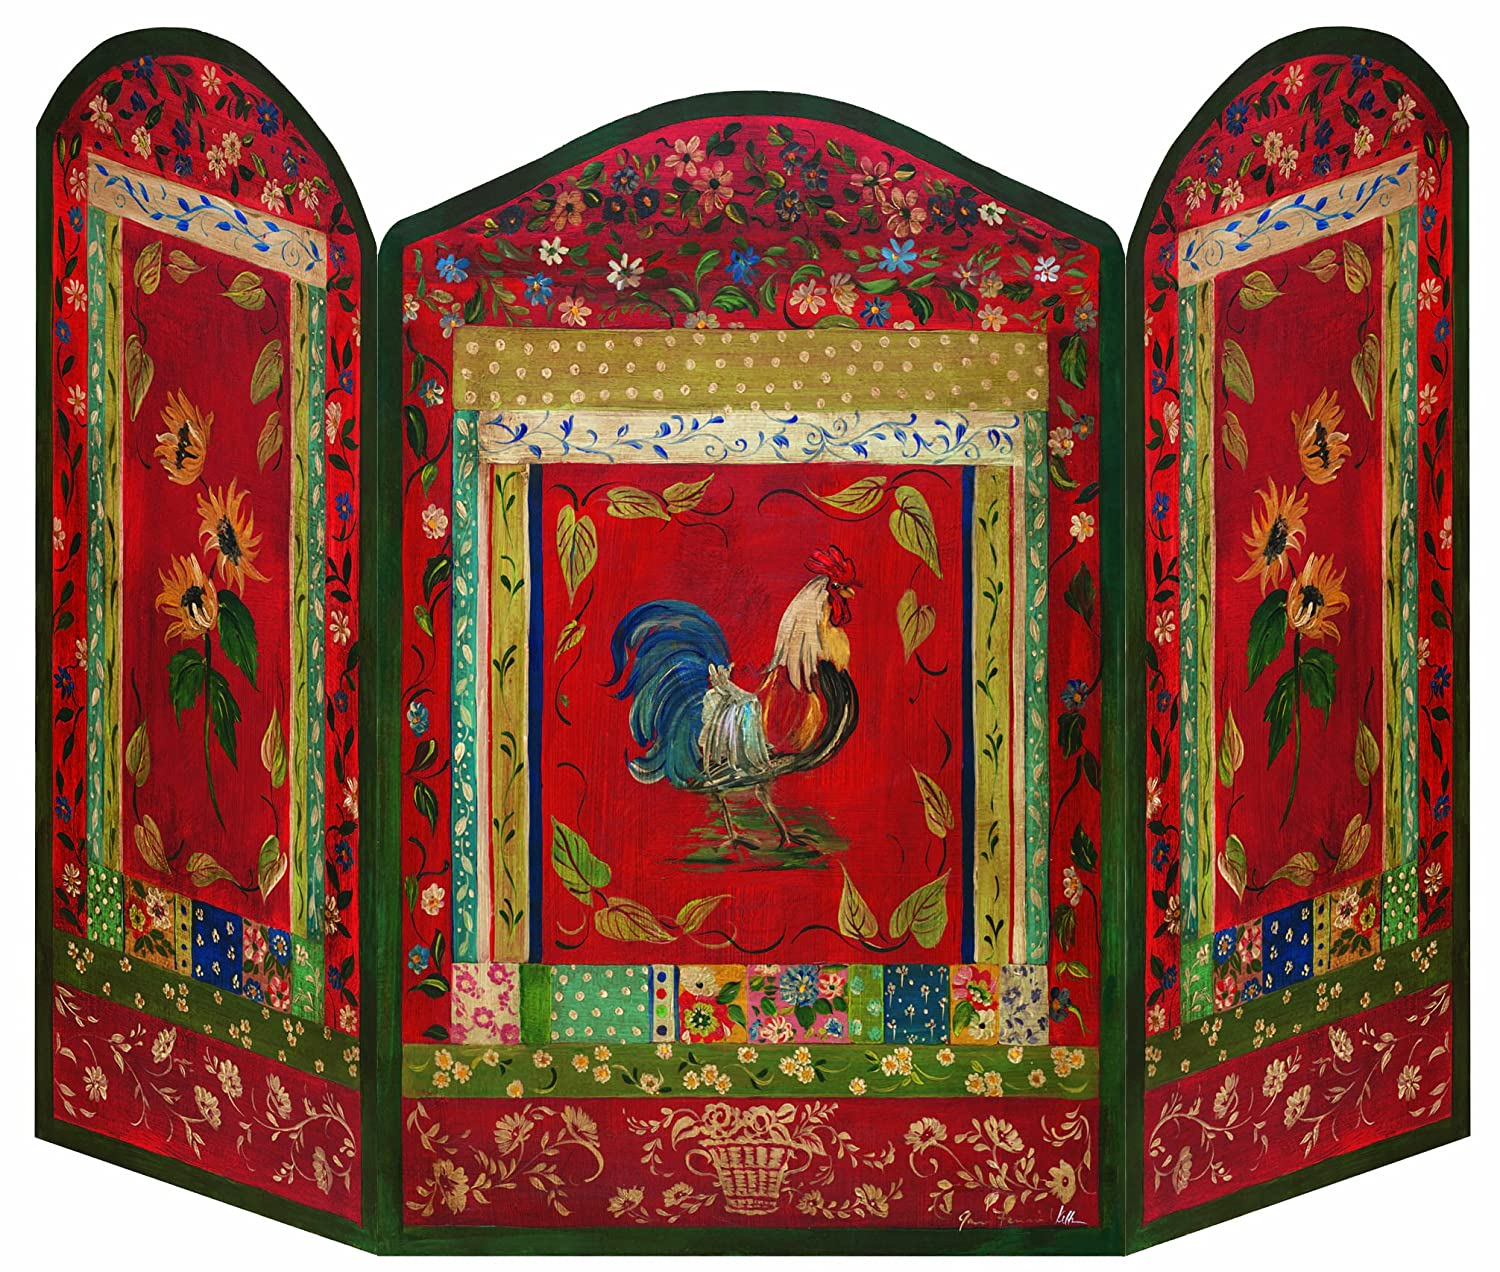 Amazon stupell home dcor red rooster 3 panel decorative amazon stupell home dcor red rooster 3 panel decorative fireplace screen 44 x 05 x 31 proudly made in usa home kitchen teraionfo